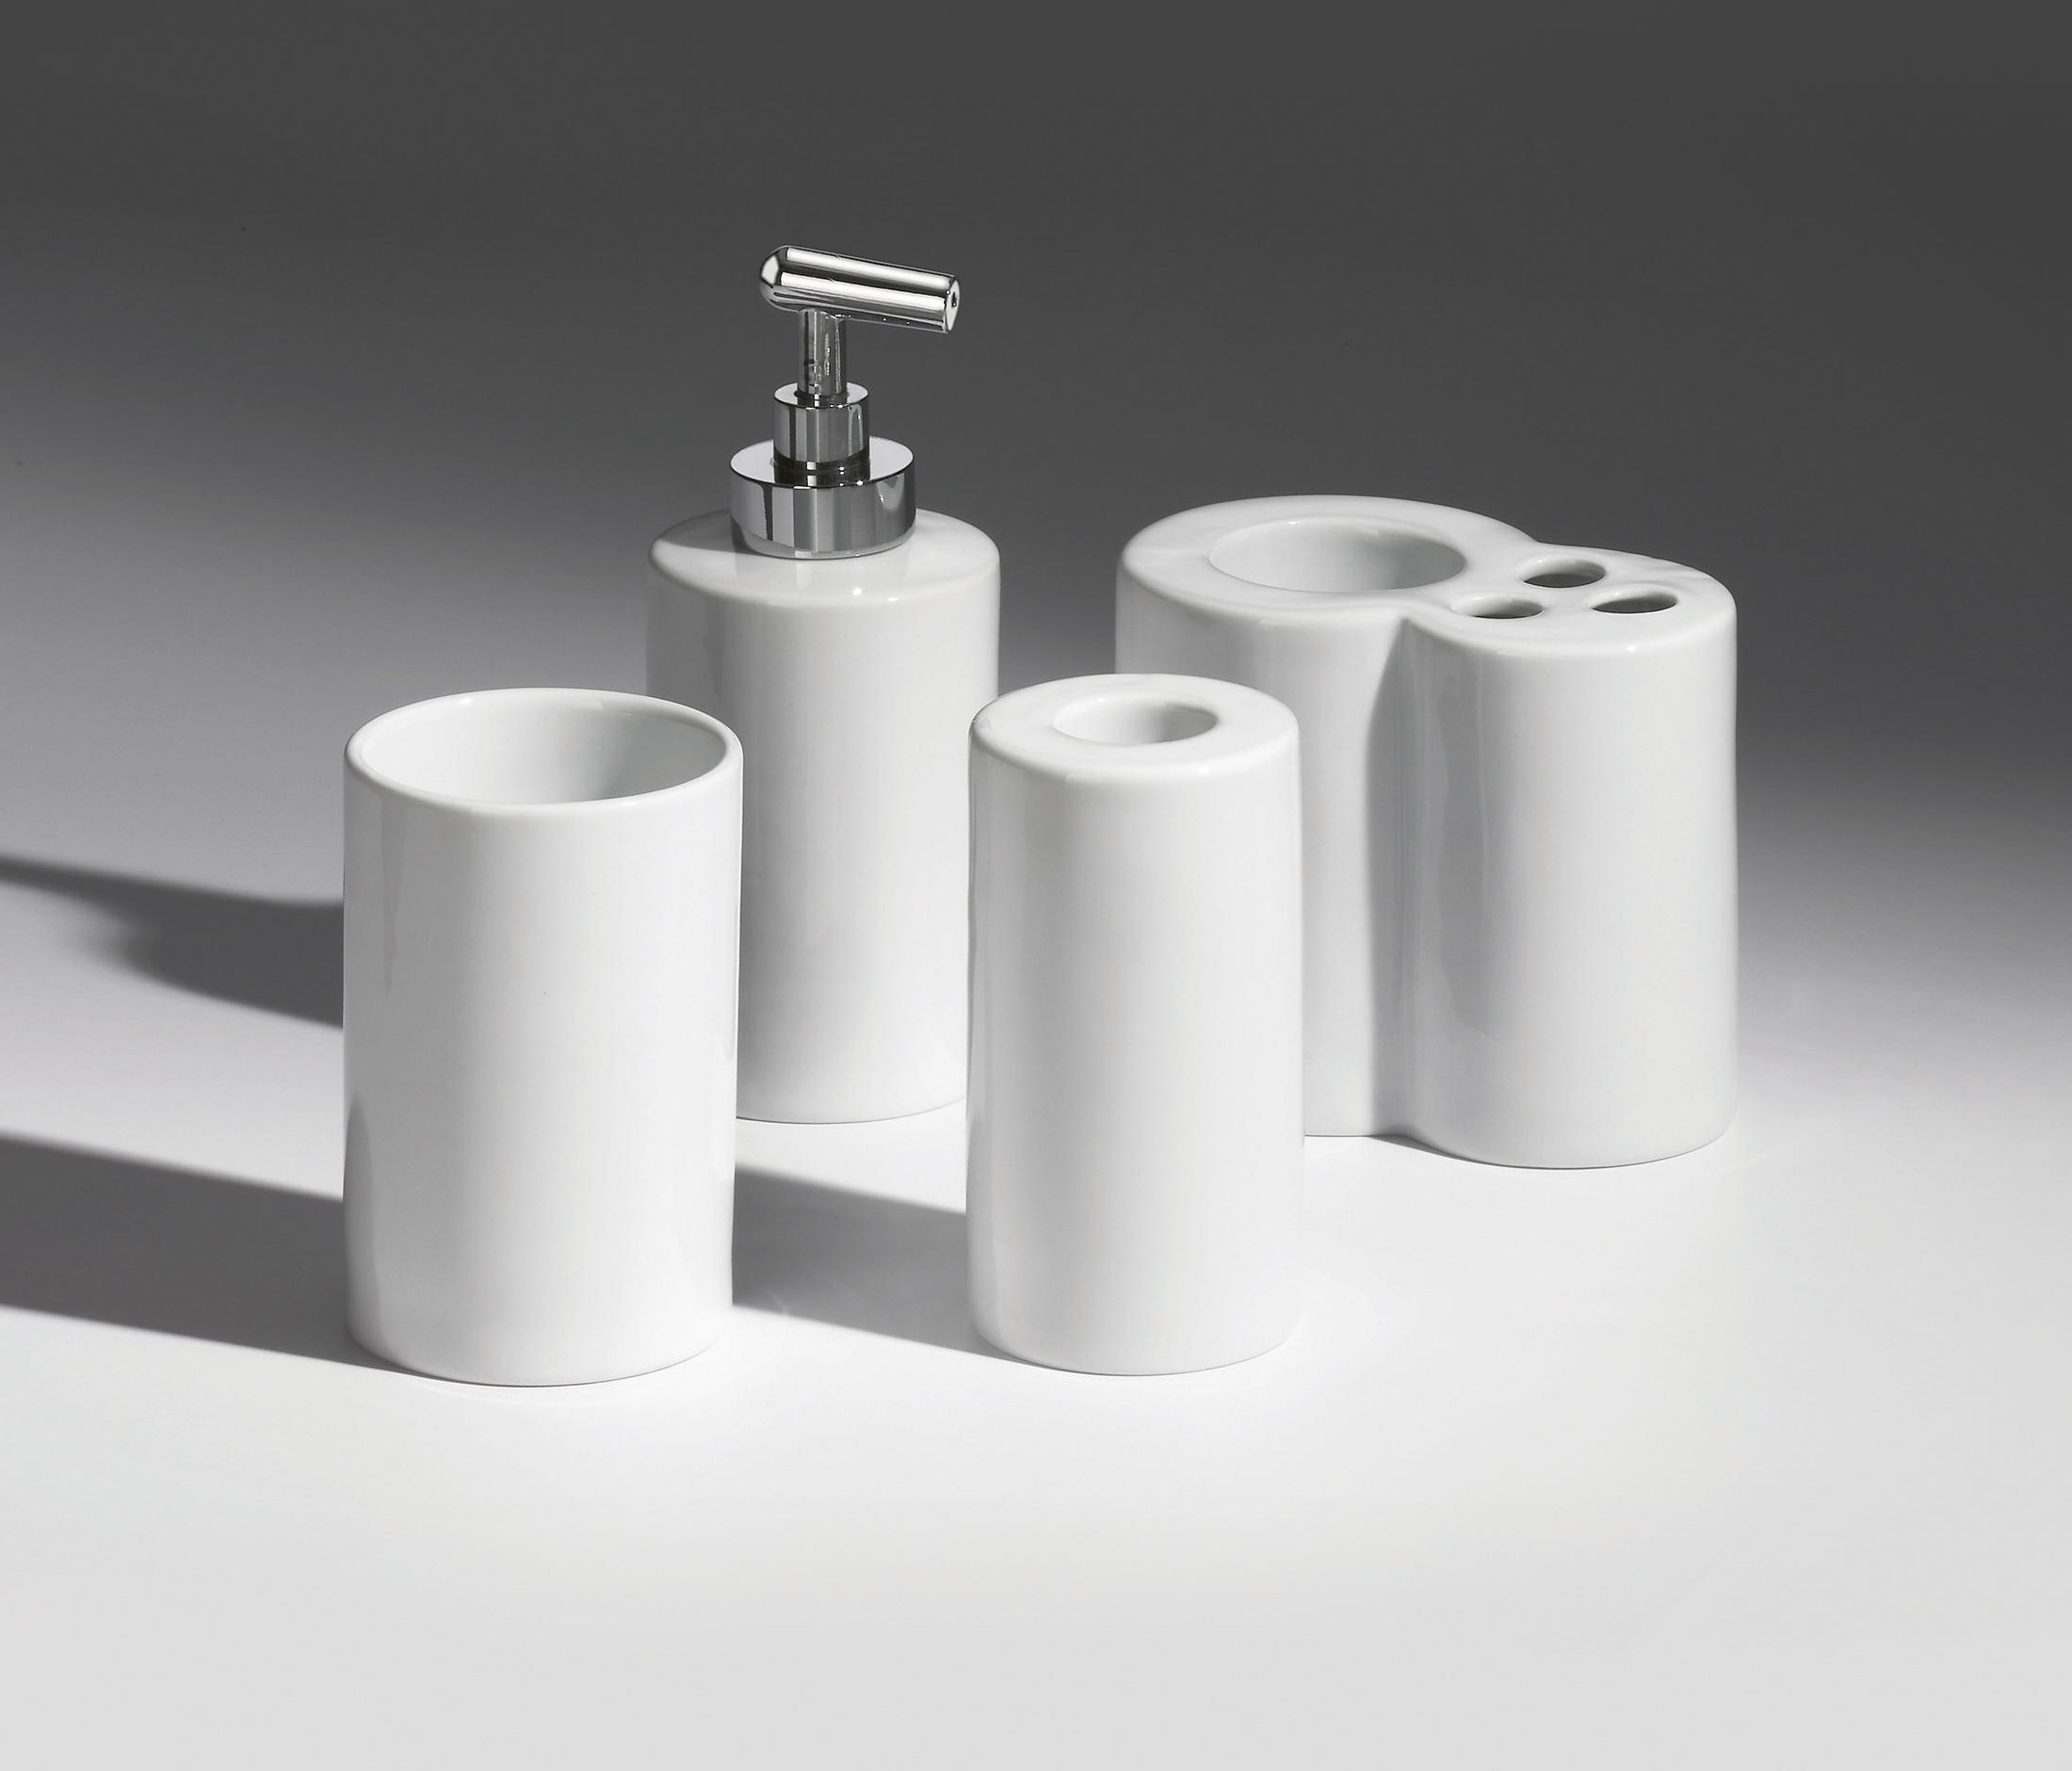 Decor Walther Bathroom Accessories.Dw 562 560 566 568 Soap Dispensers From Decor Walther Architonic